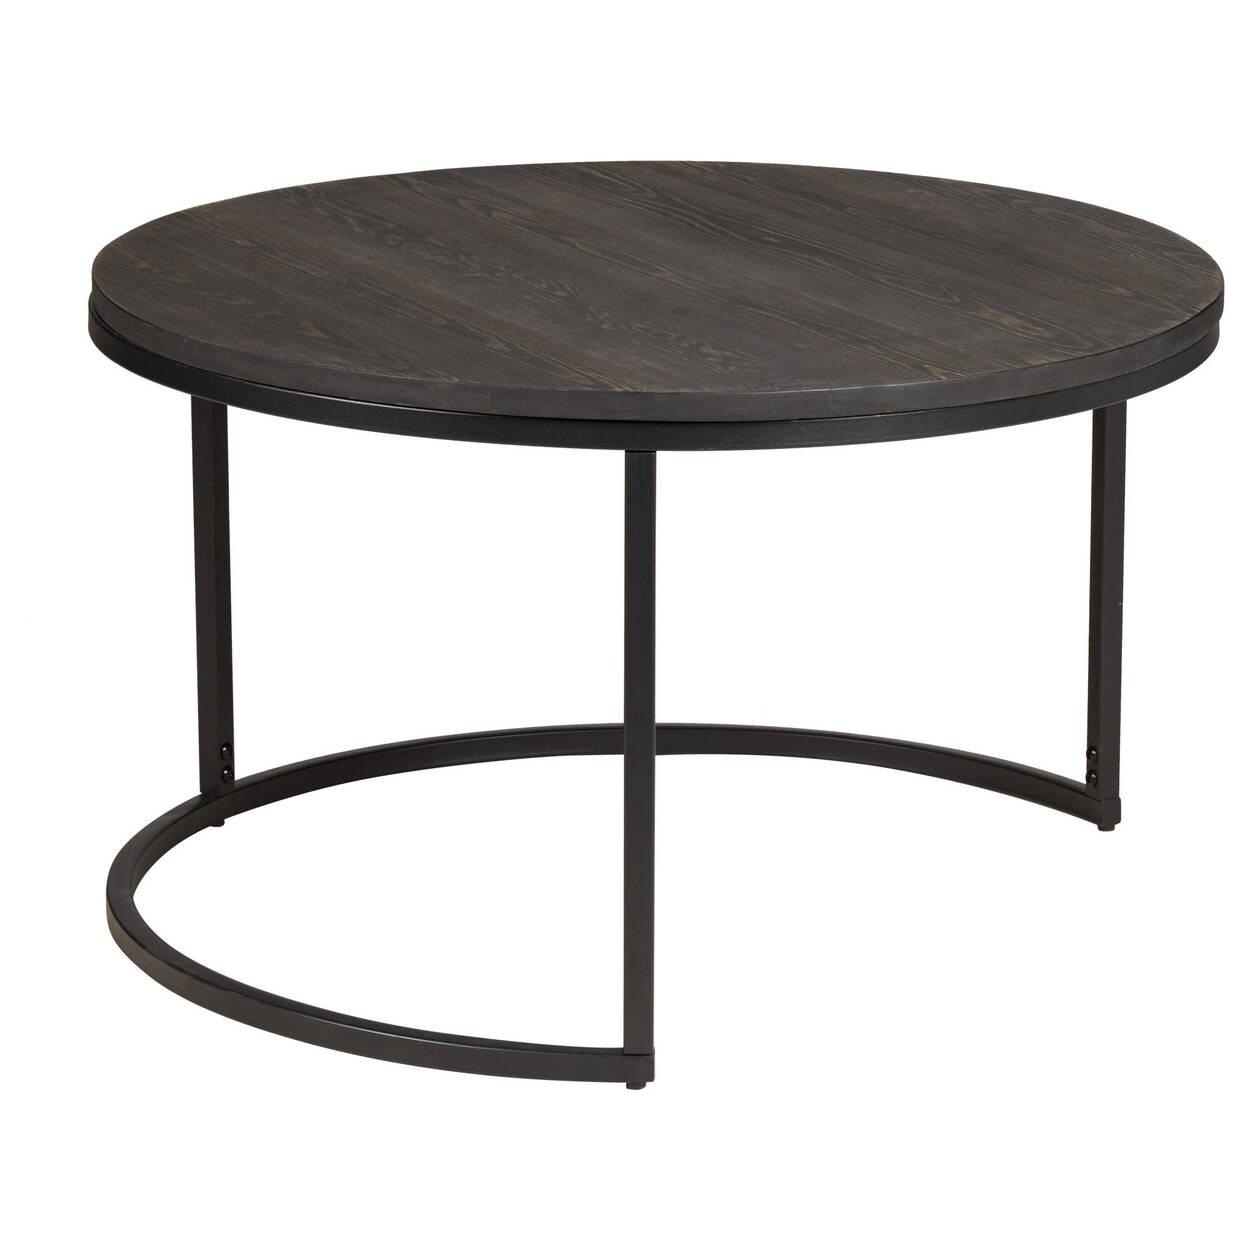 Set Of 2 Pine Wood Side Tables With Metal Legs Bouclaircom